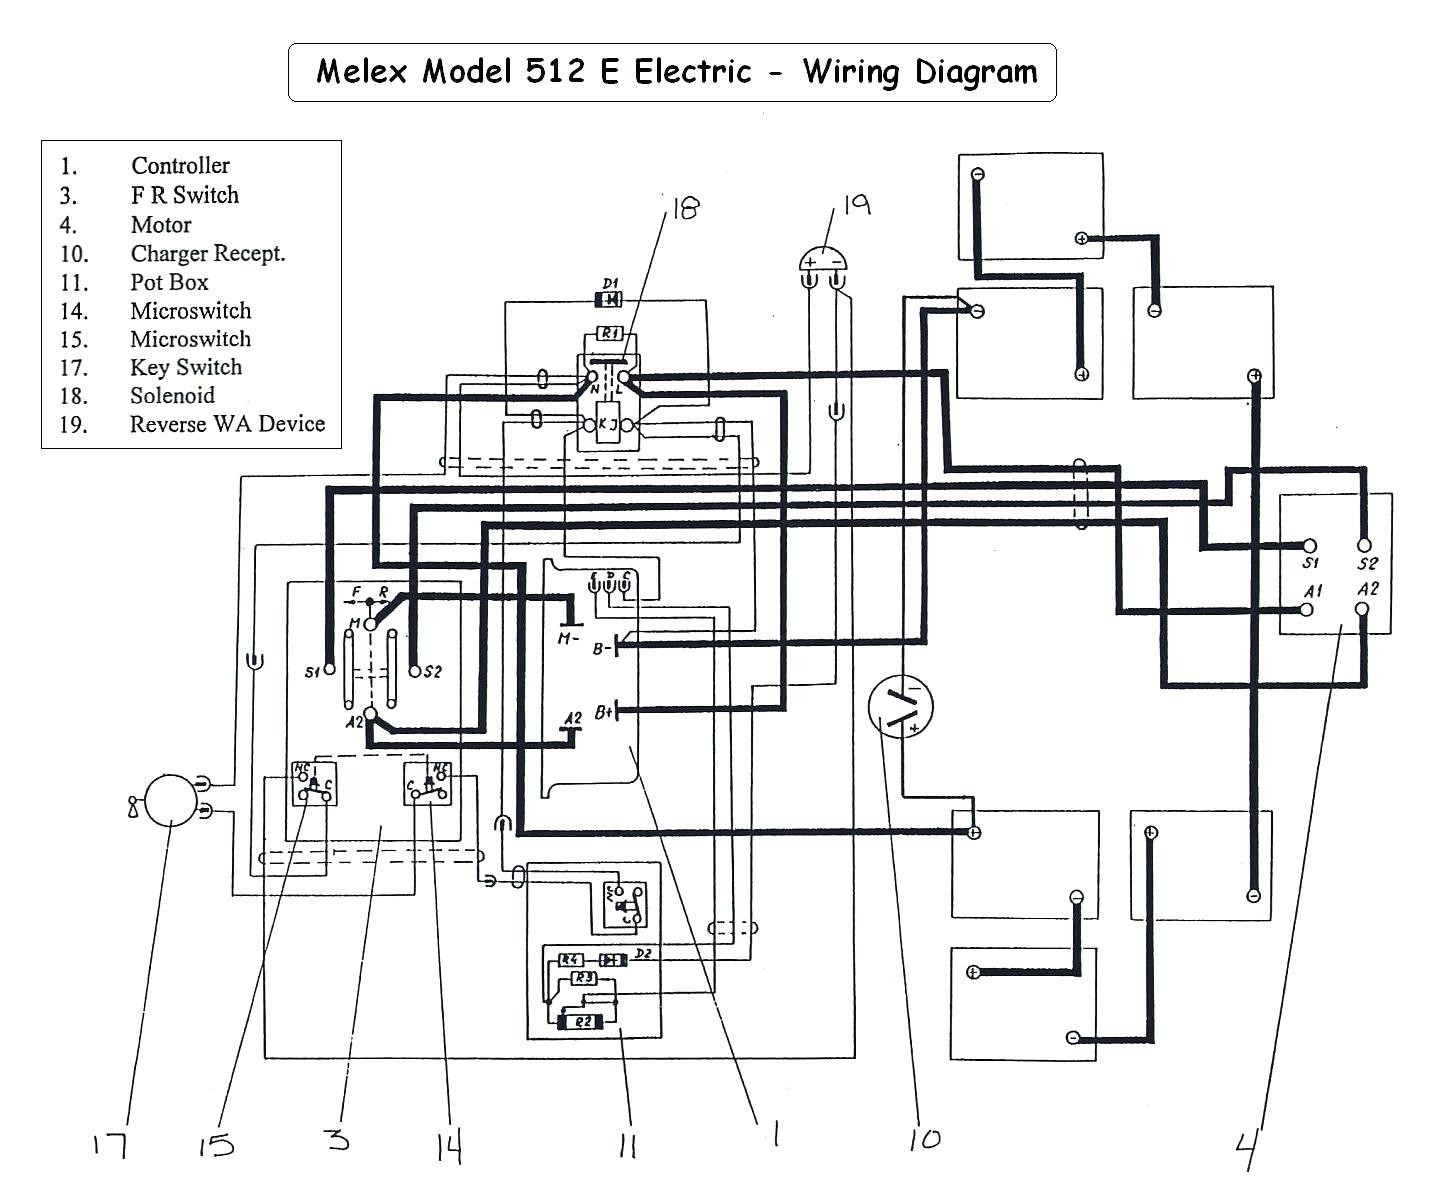 hight resolution of 1992 ezgo 36v wiring diagram basic electronics wiring diagram mustang wiring loom master kit d0zzwck 5499 champion mustang